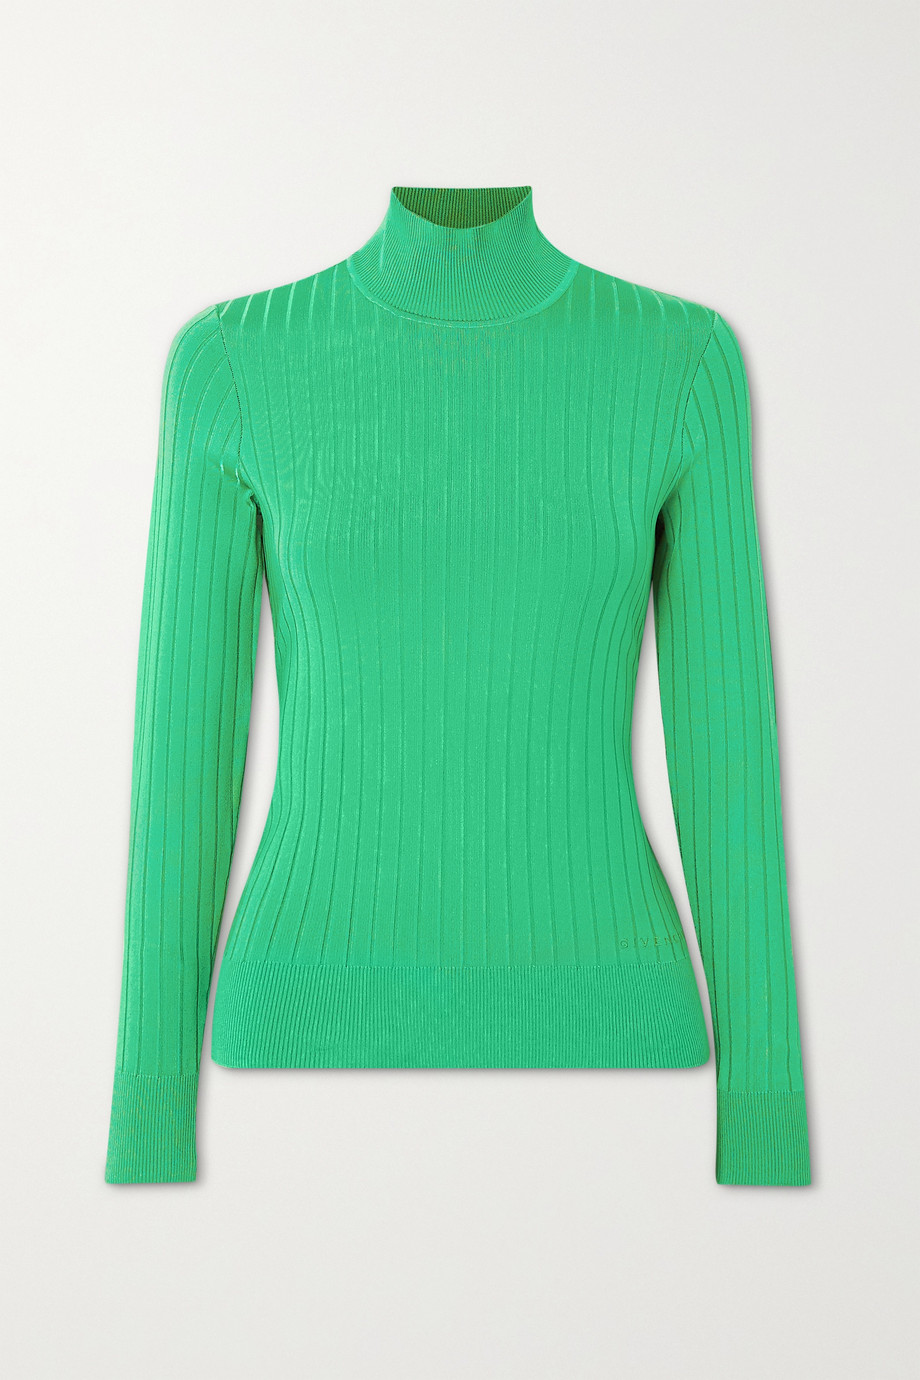 Givenchy Ribbed-knit sweater